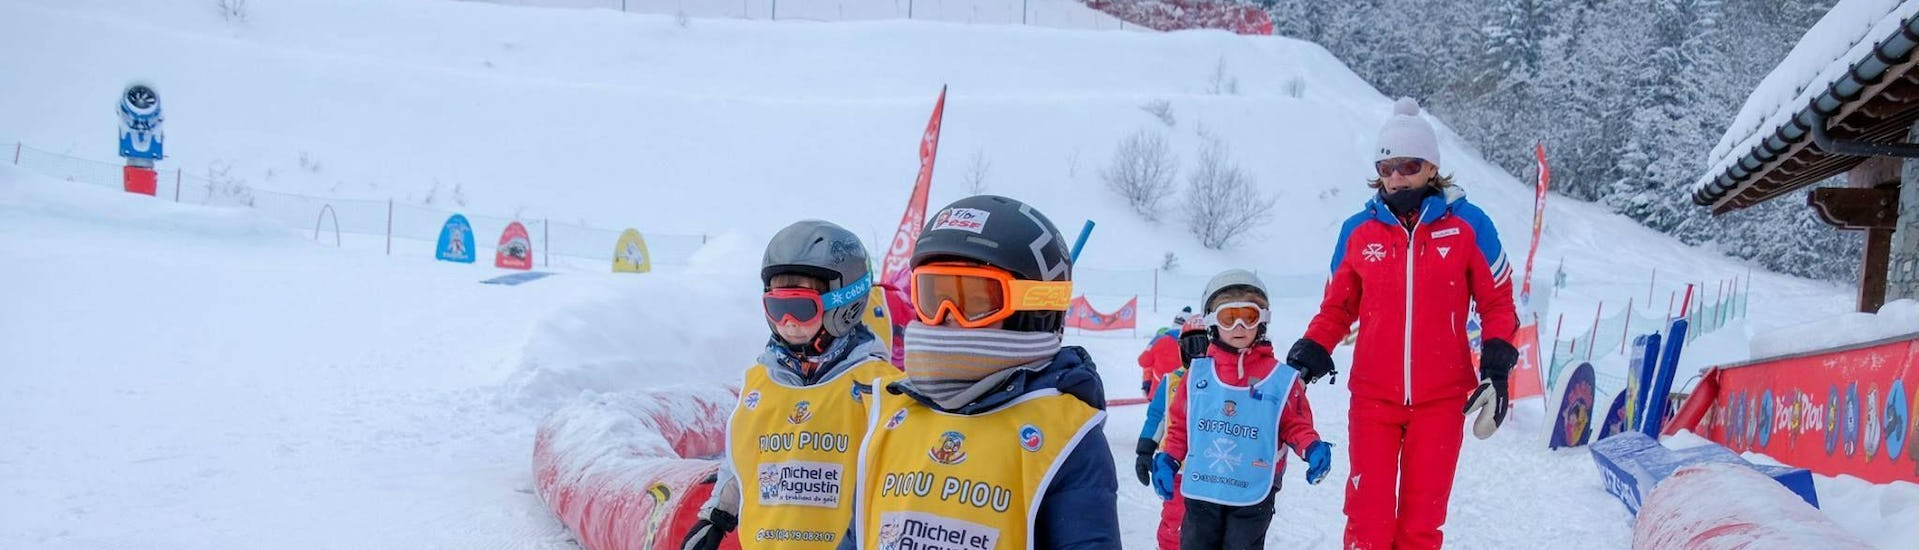 kids-ski-lessons-club-piou-piou-3-5-years-esf-courchevel-hero